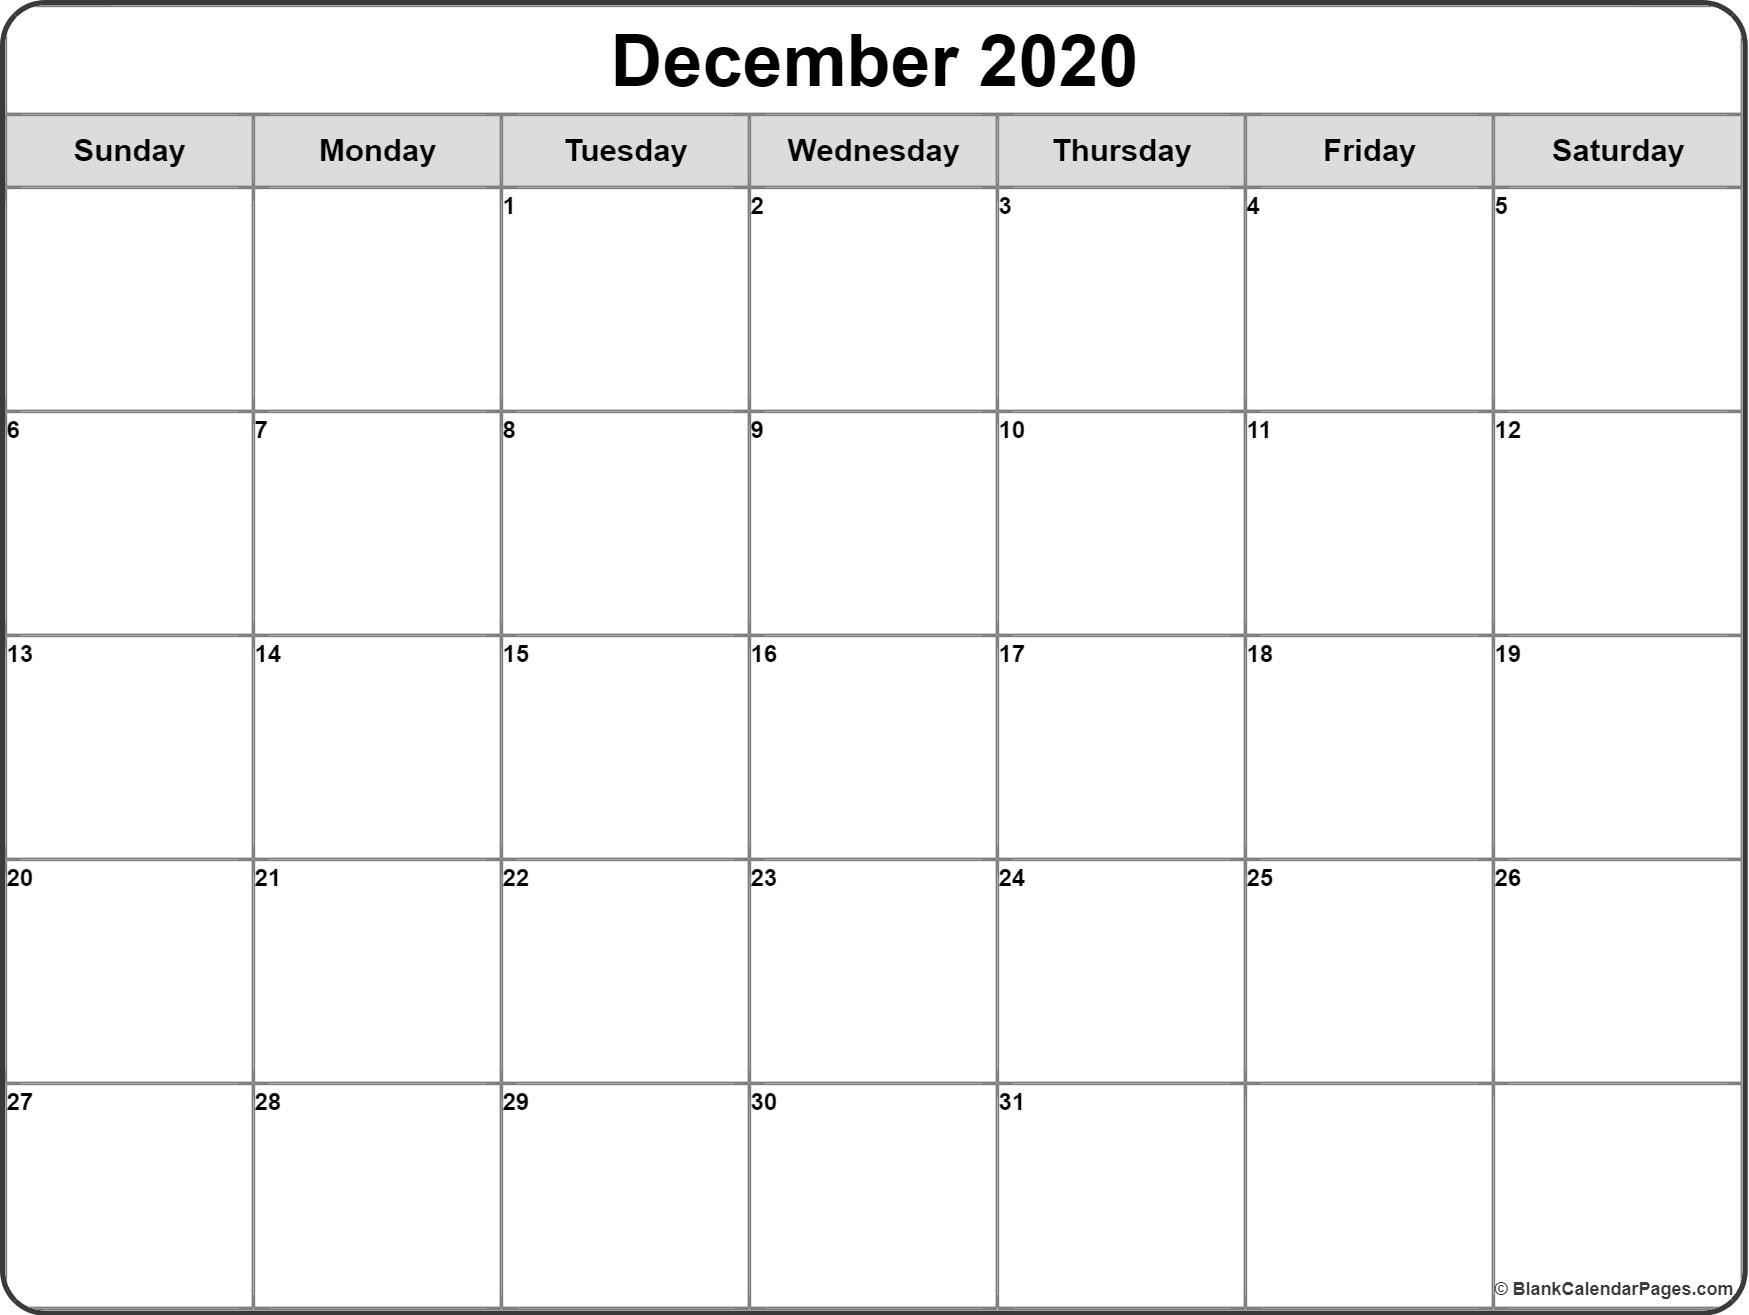 December 2020 Calendar | Free Printable Monthly Calendars-Printable Bill Calendar 2020 Monthly